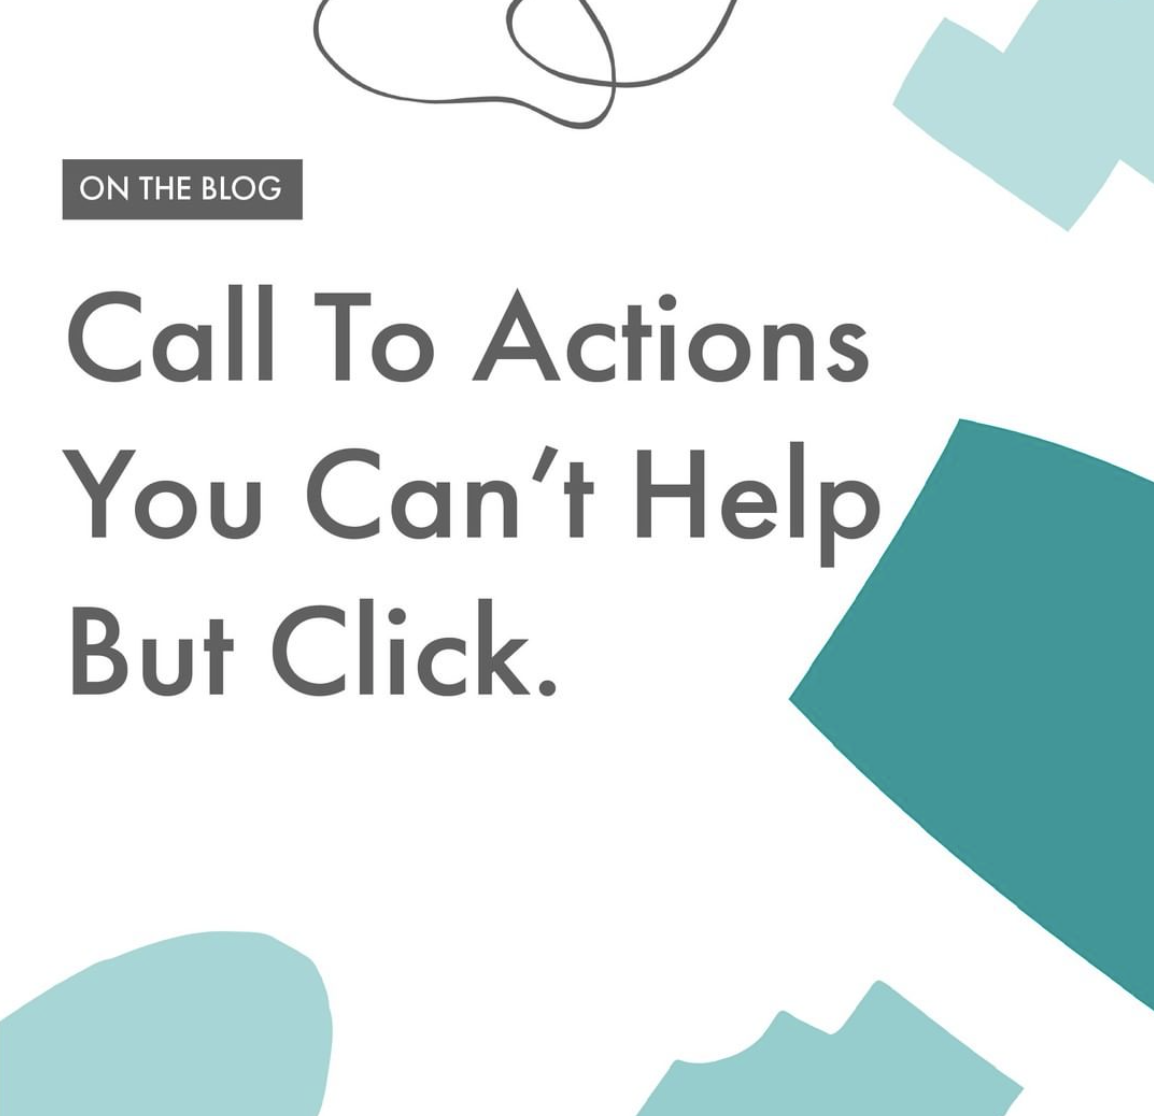 Call To Actions You Can't Help But Click